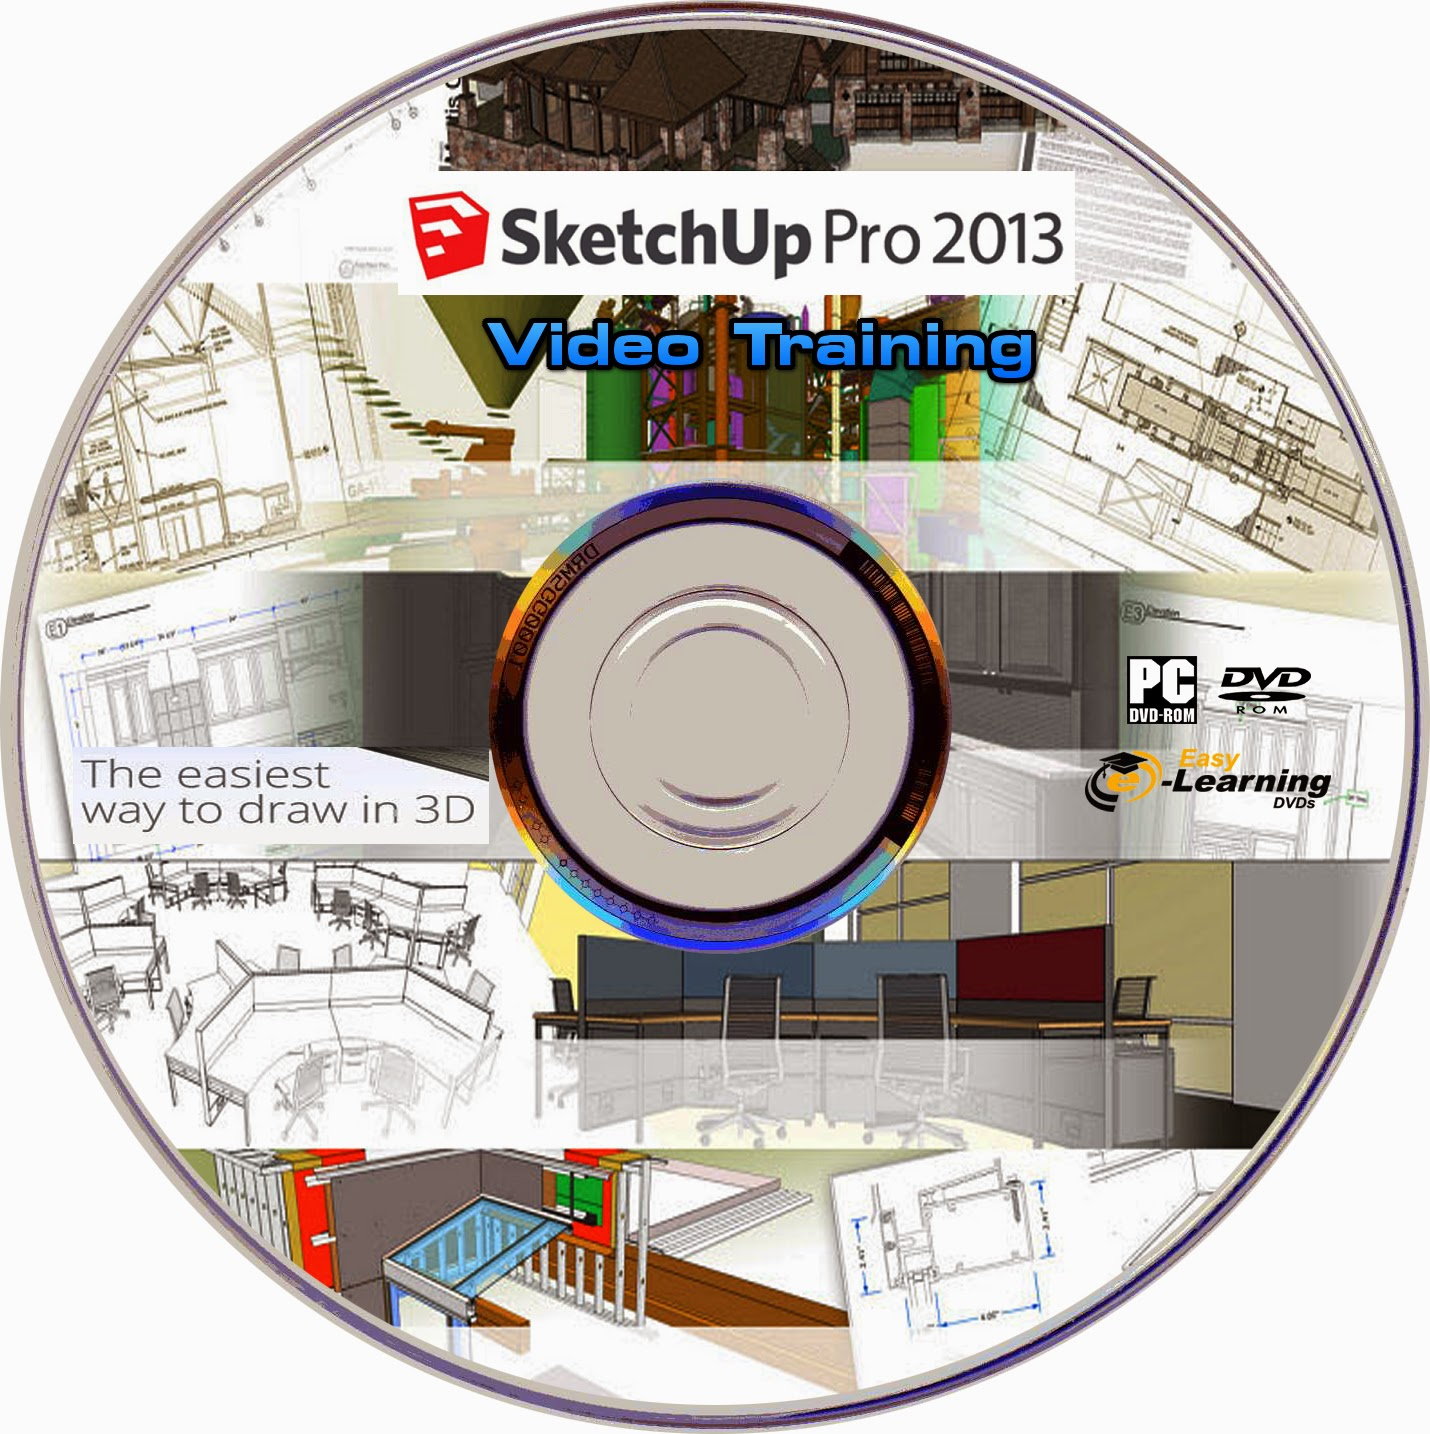 Trainingdvds self learning sketchup pro 2013 video for Sketchup 2013